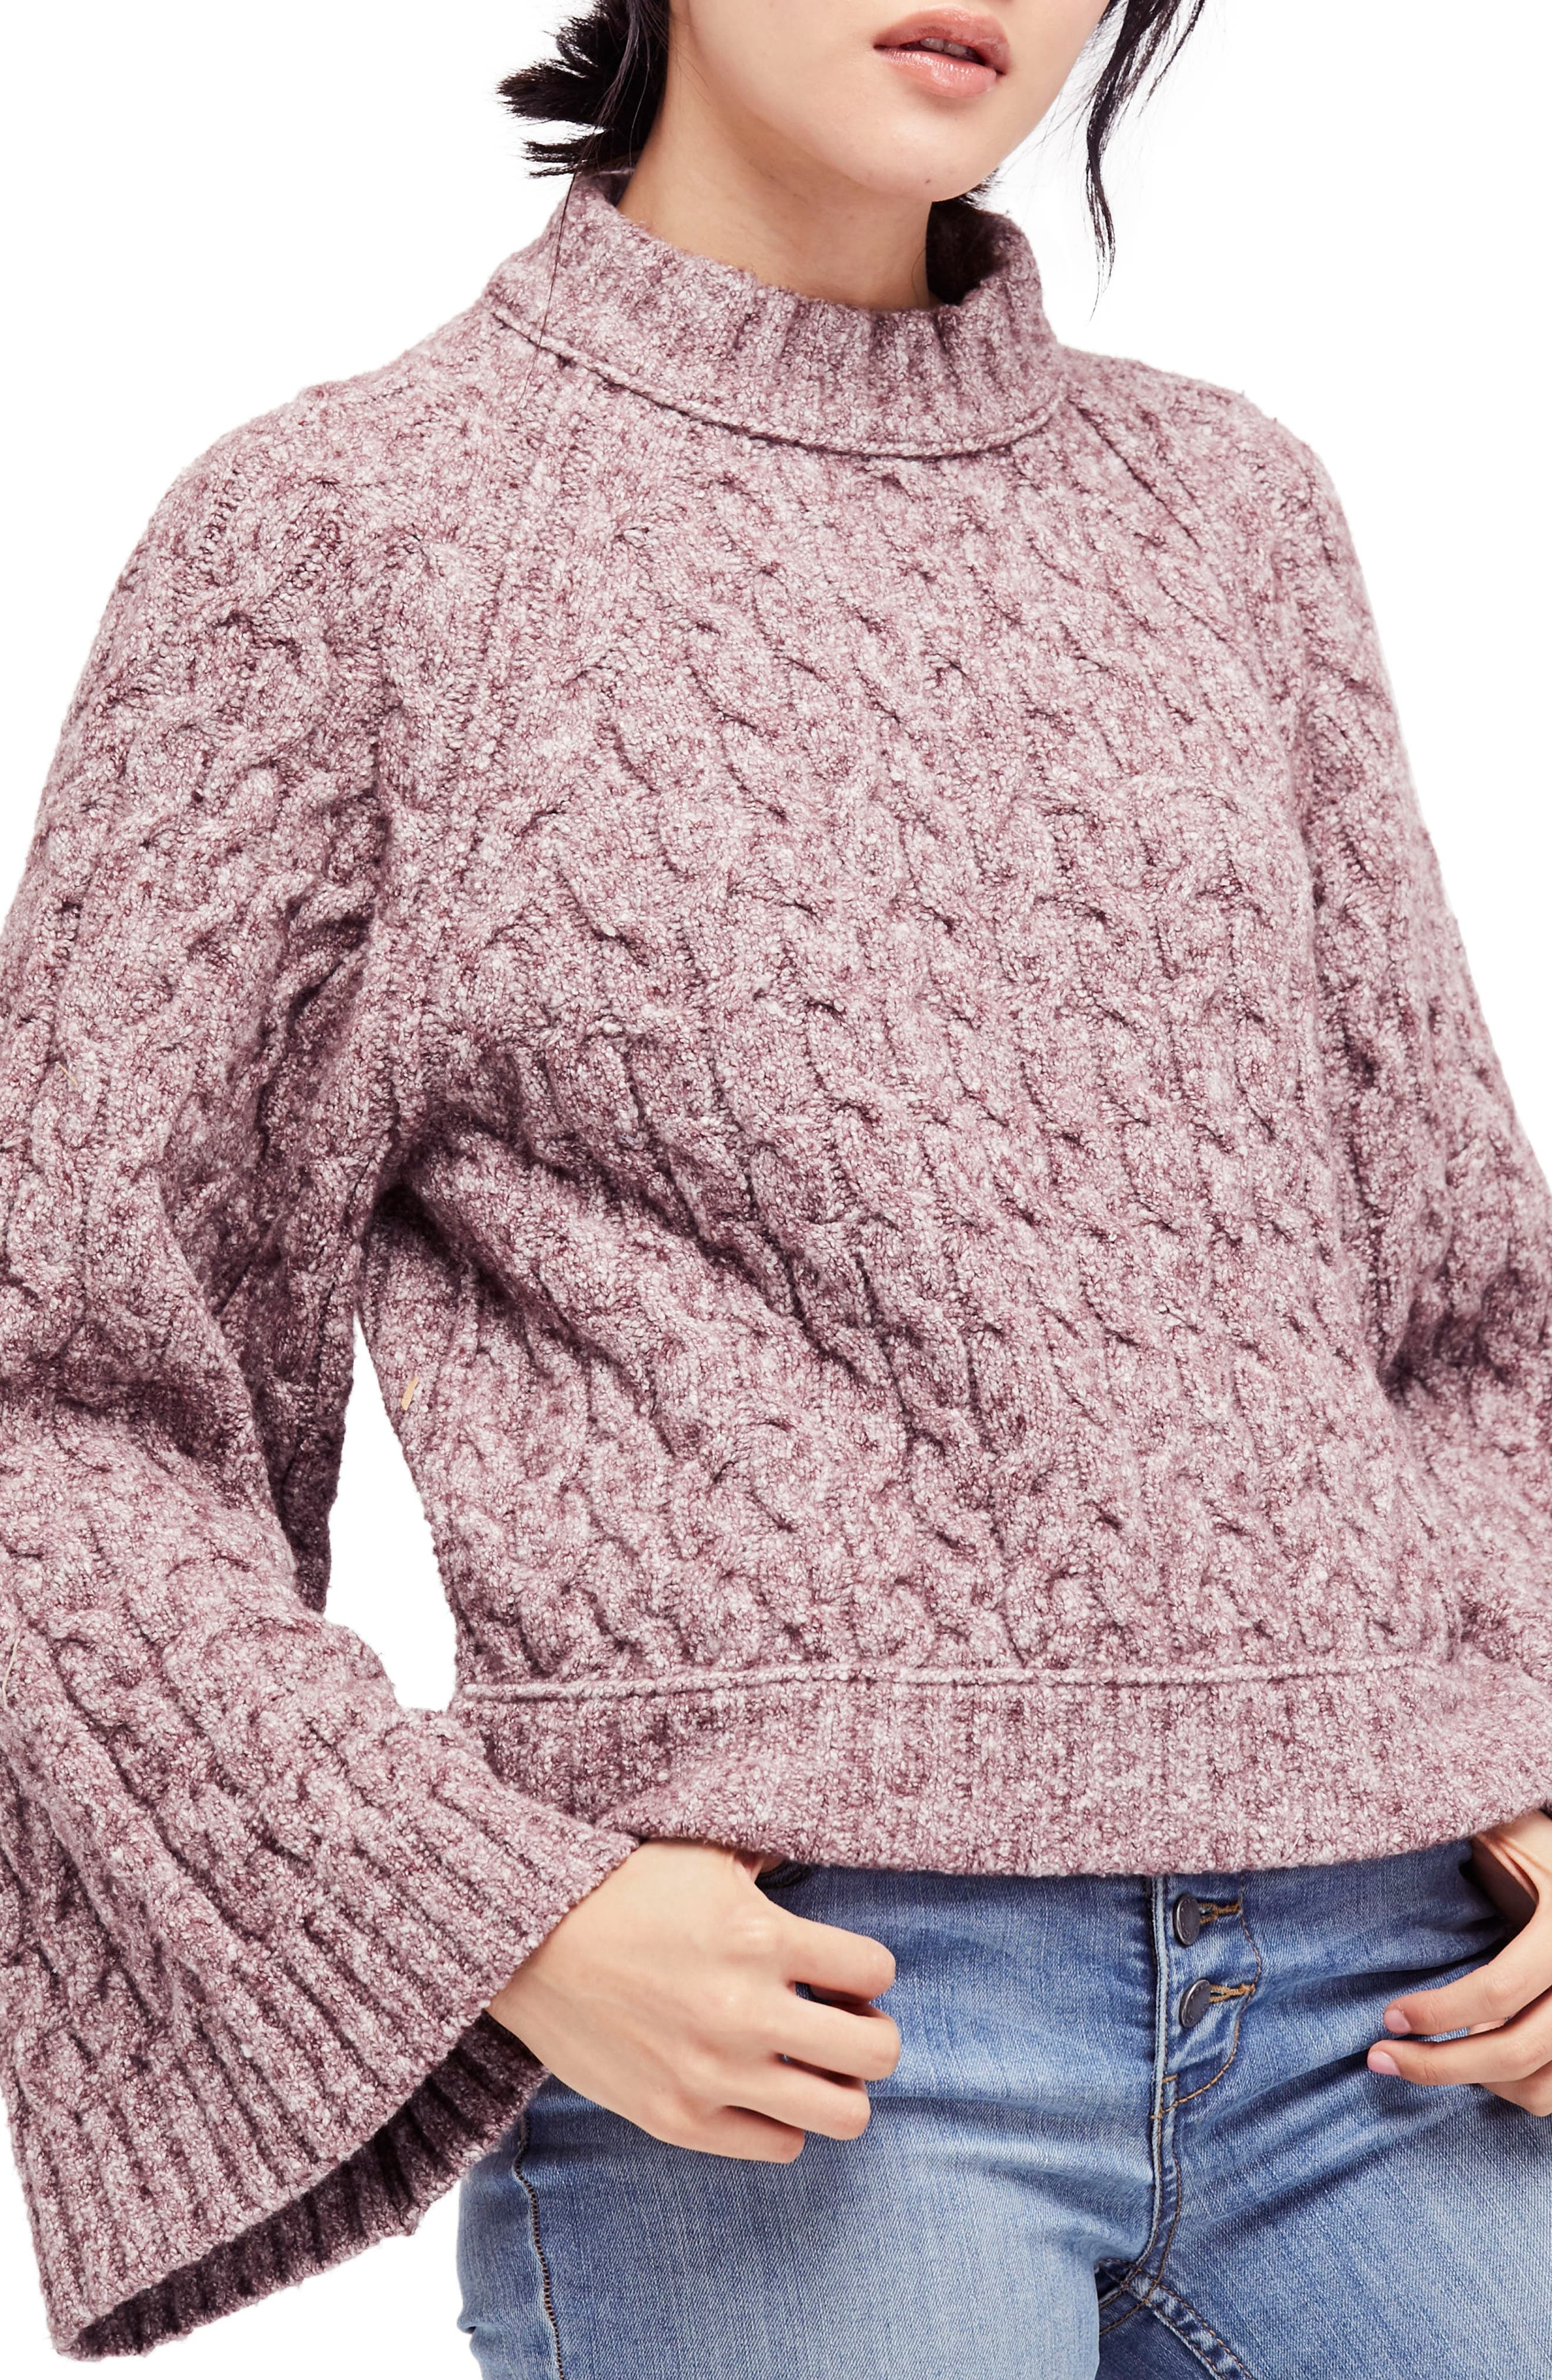 Main Image - Free People Snow Bird Cable Knit Sweater